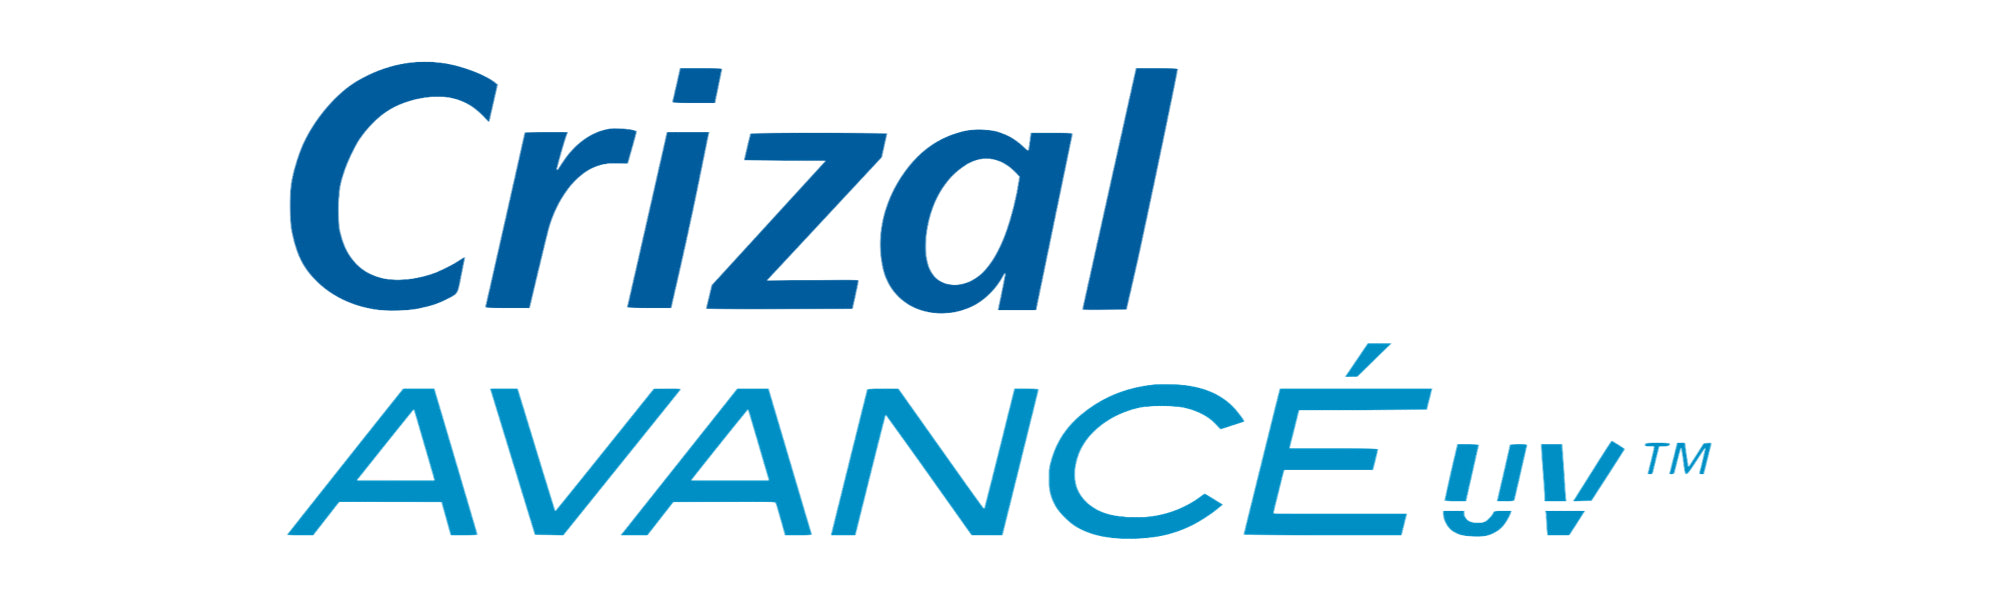 Crizal Avance Anti-Reflective Coating